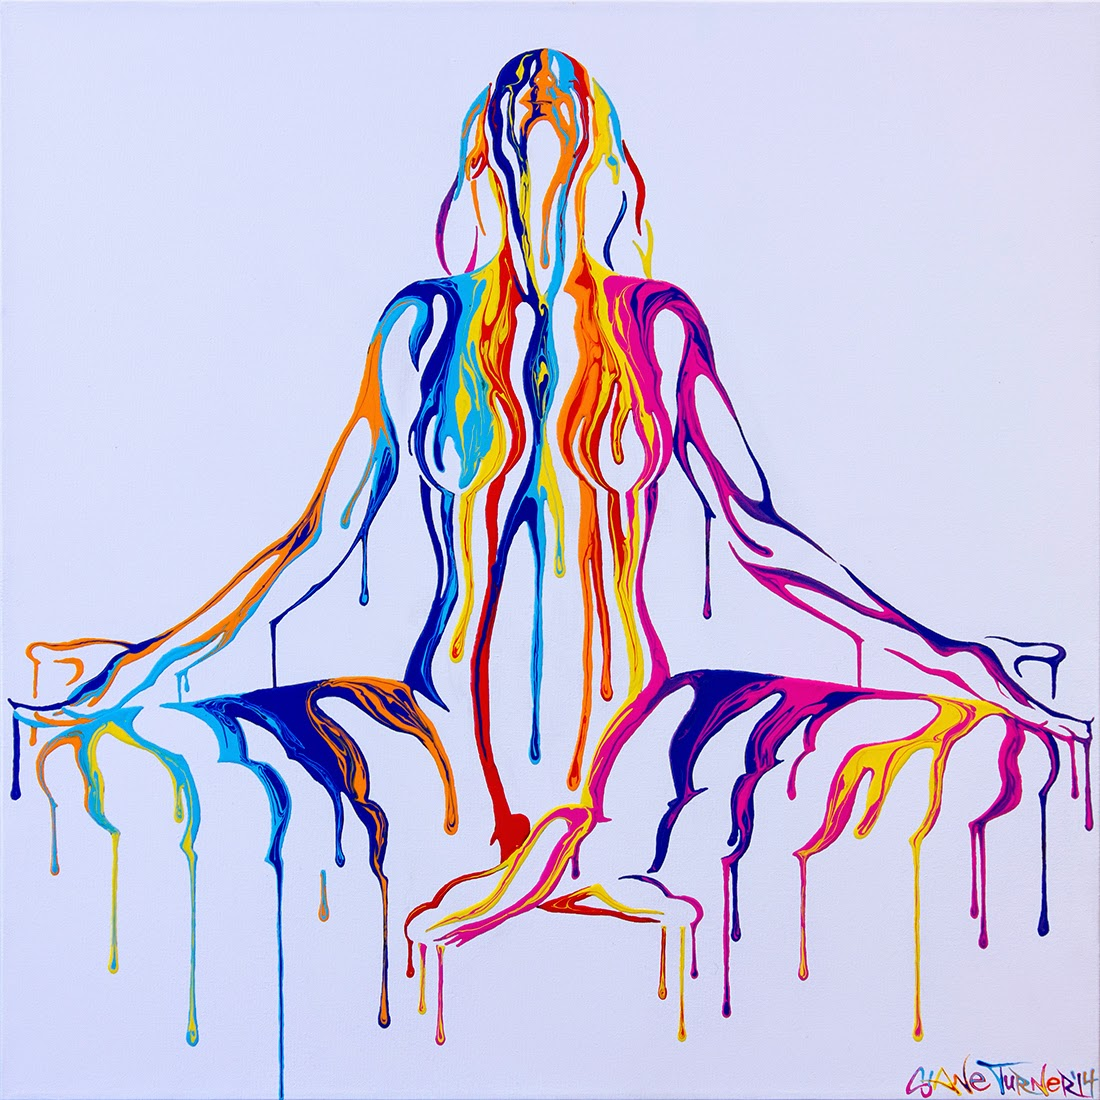 Surreal urban pop art painting of a nude woman created out of dripping colorful psychedelic paintin a lotus mediating type yoga pose. Painted using bright acrylic glossy paints on canvas.